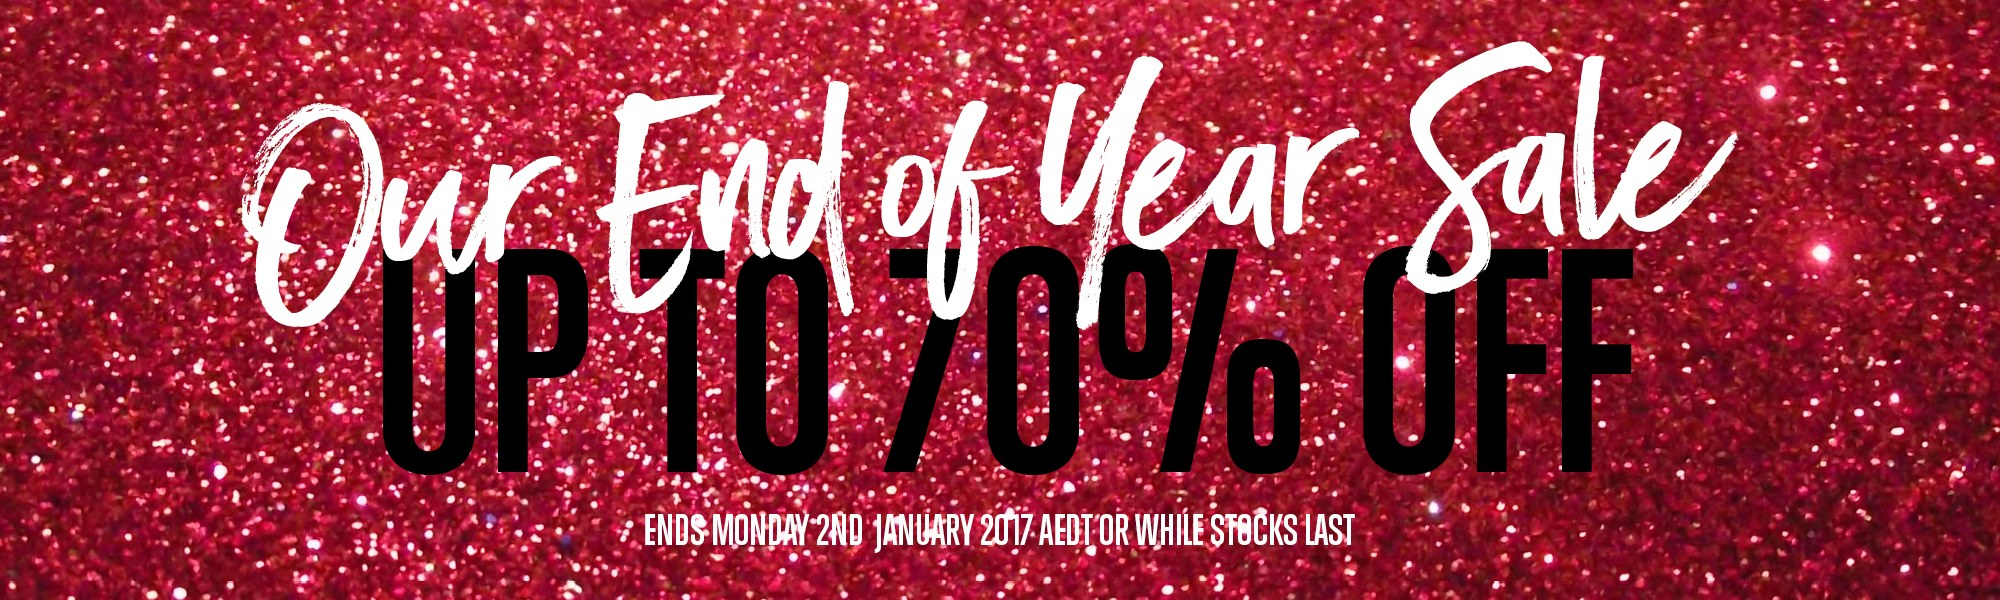 Outlet End of Year sale